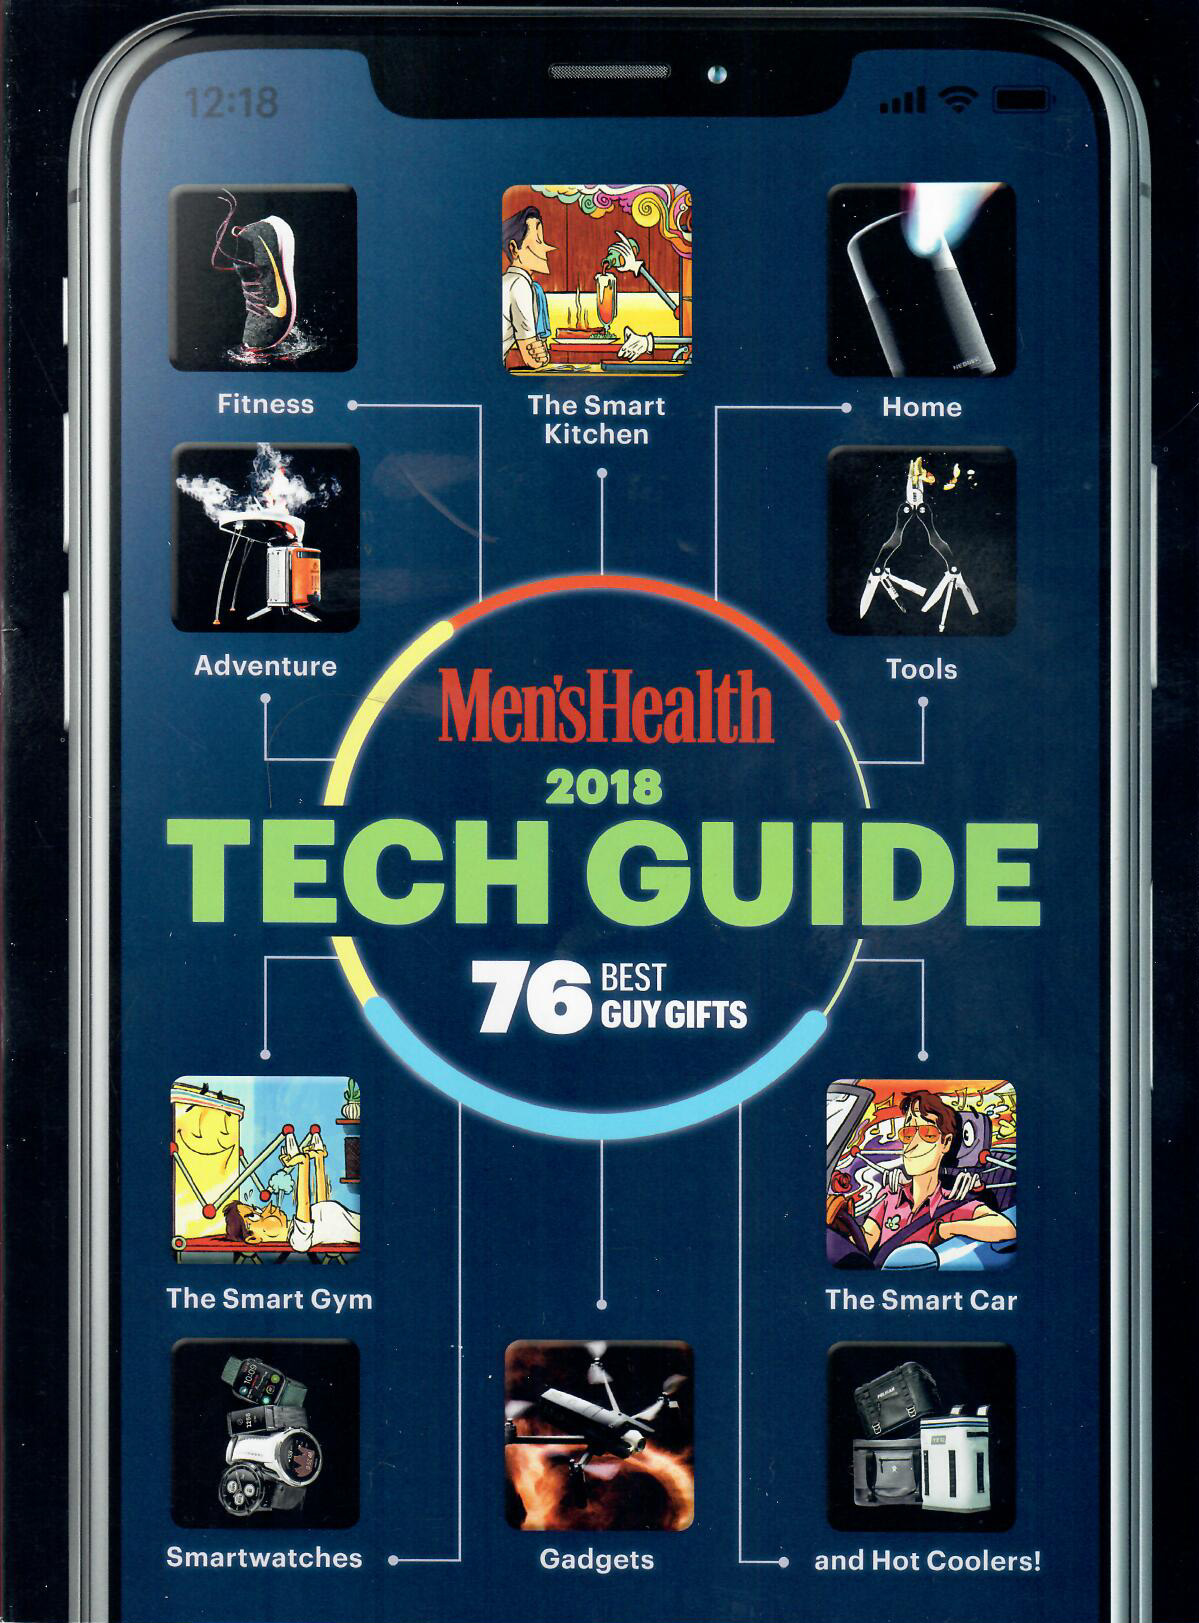 MensHealth_2018TechGuide_cover.jpg